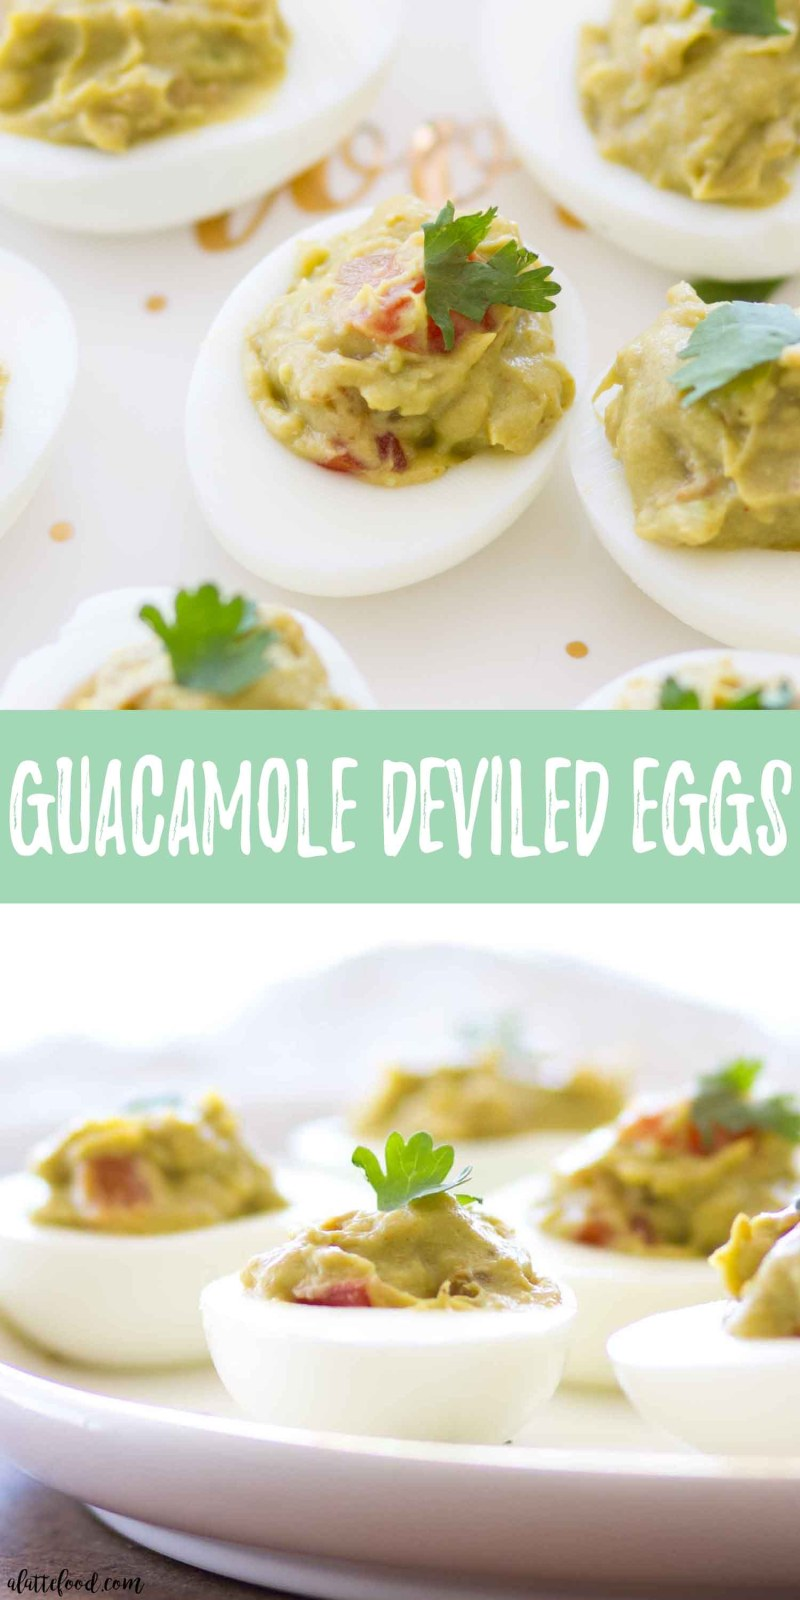 guacamole deviled eggs collage